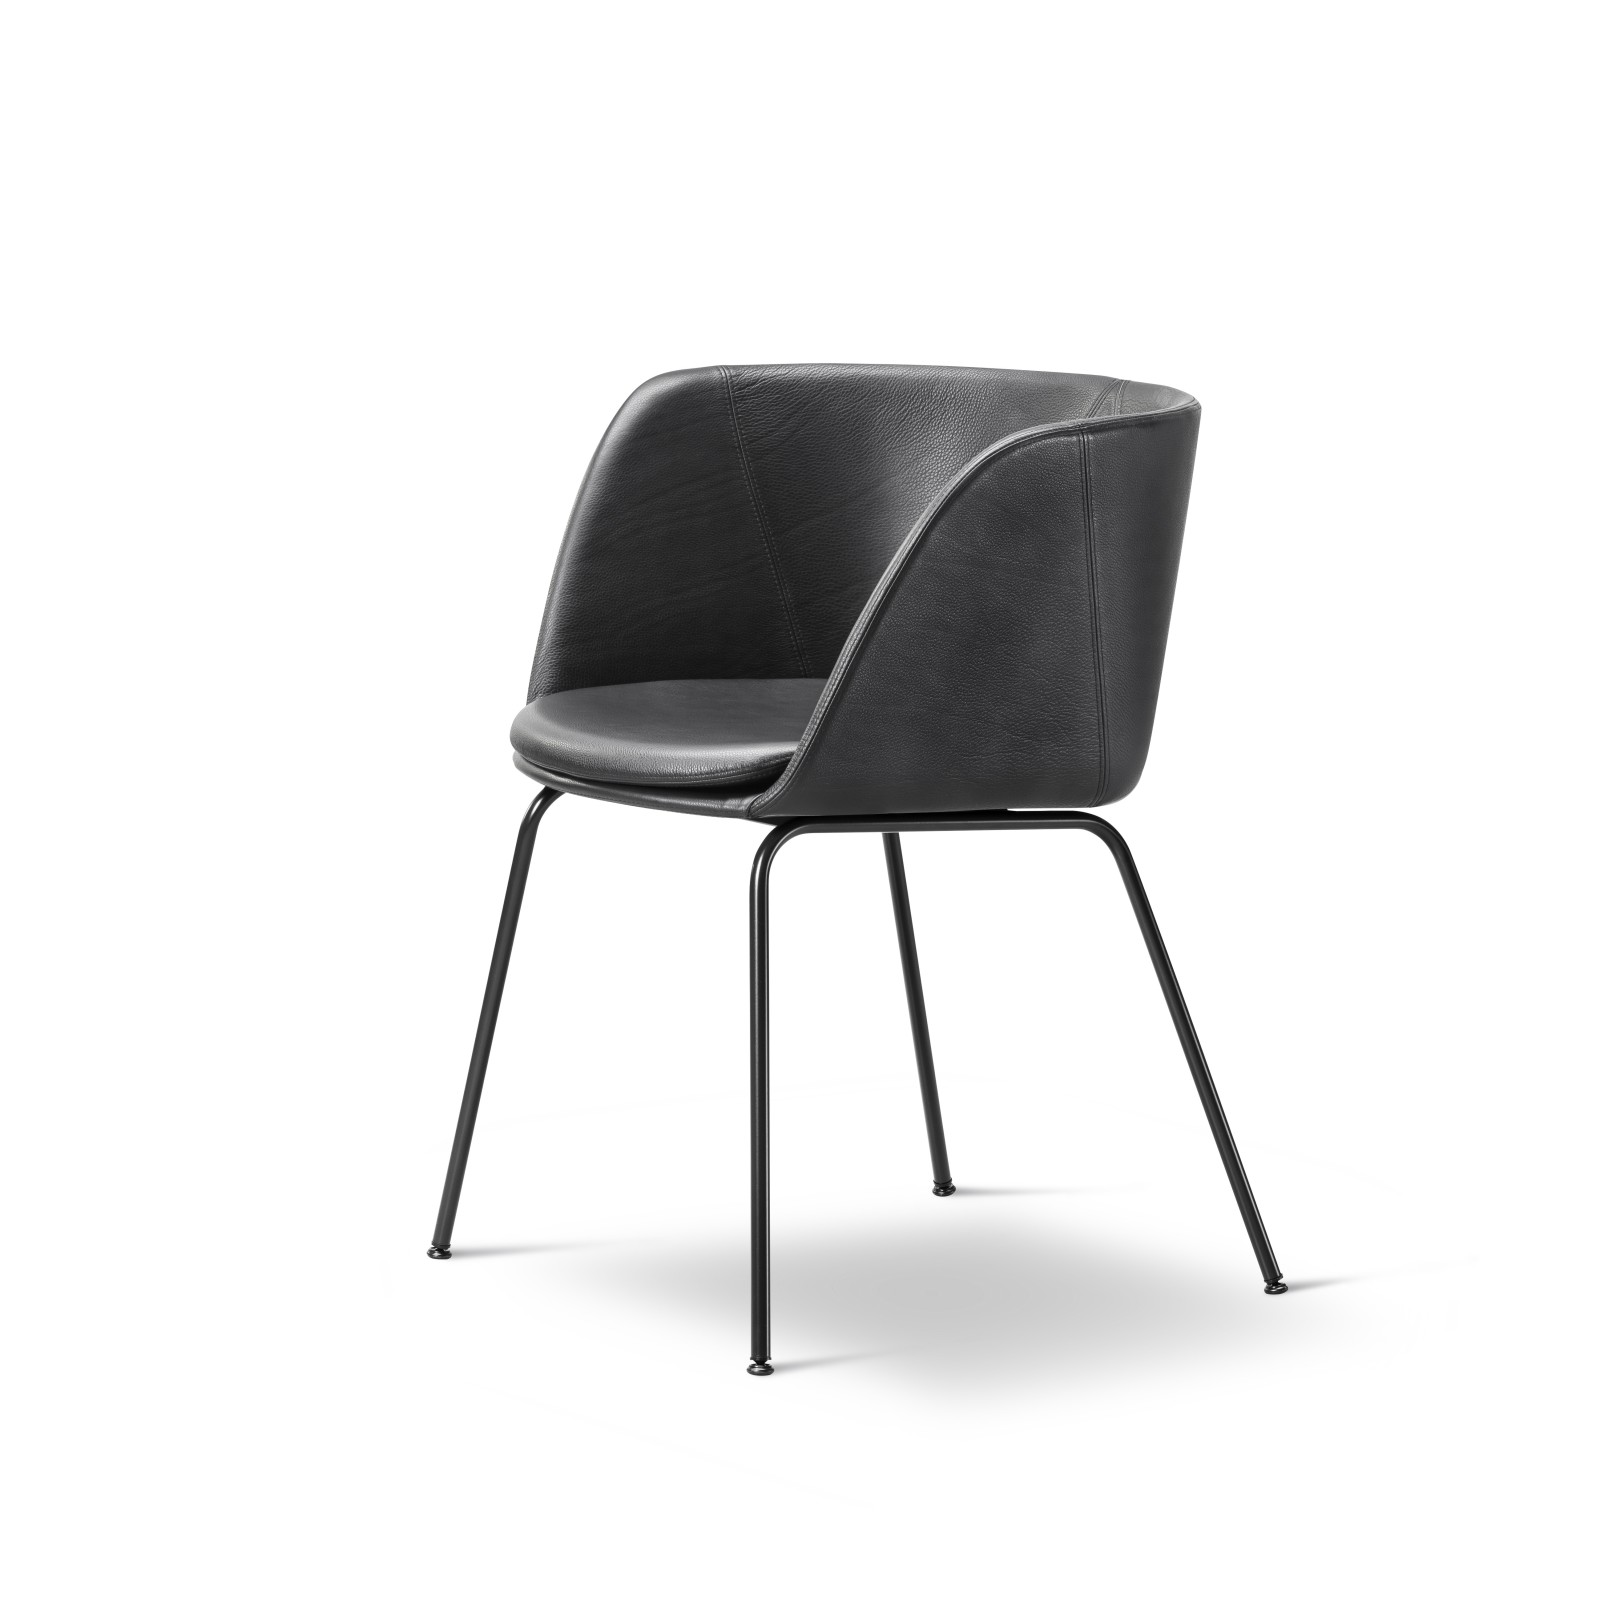 Verve 4 Leg fully upholstered Black Painted Steel, Remix 2 113